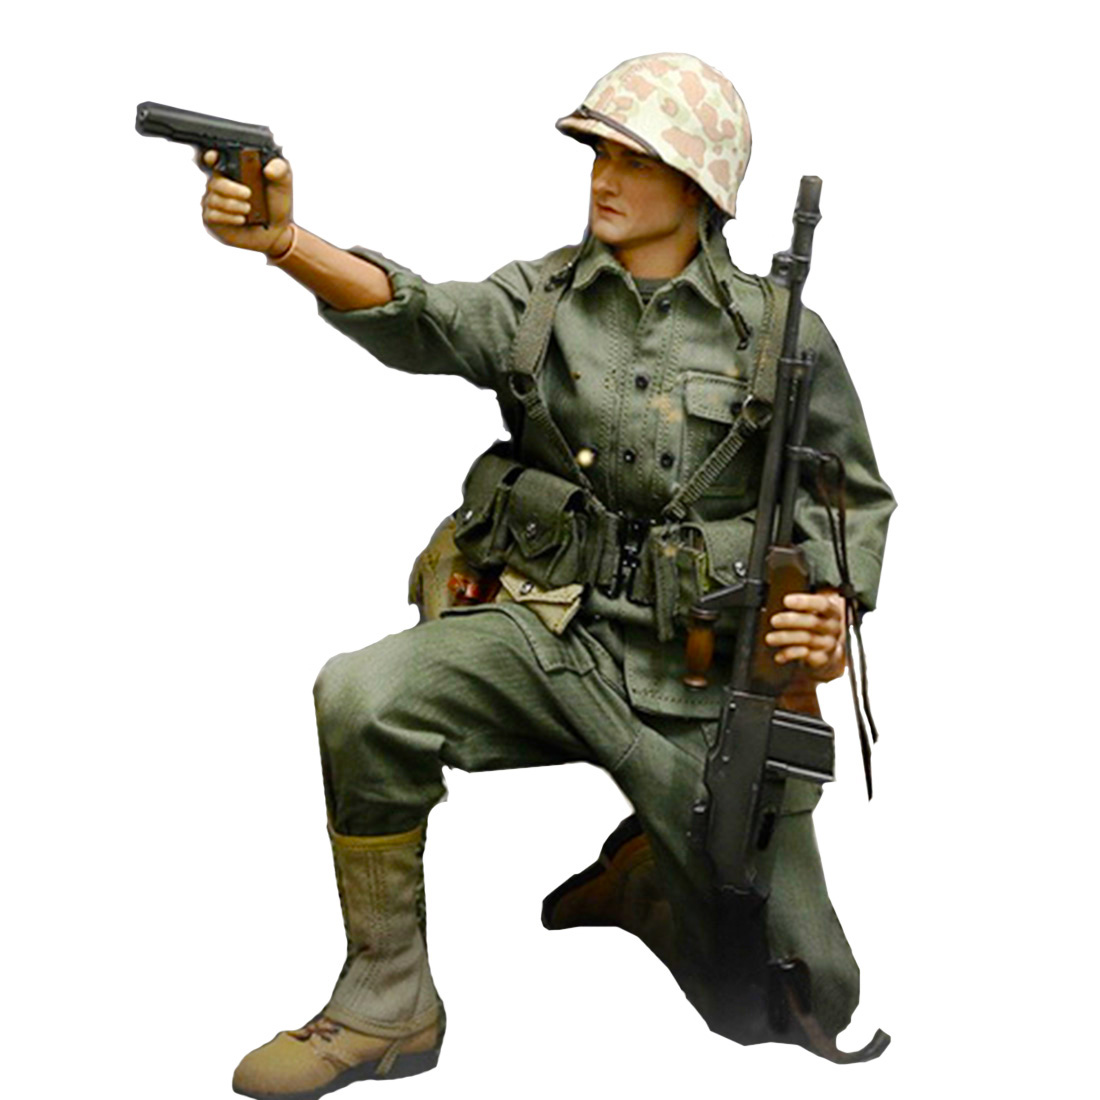 alert-line-wwii-1-6-war-players-soldier-model-action-figure-model-no-body-and-head-sculpt-building-blocks-toys-gifts-for-kids